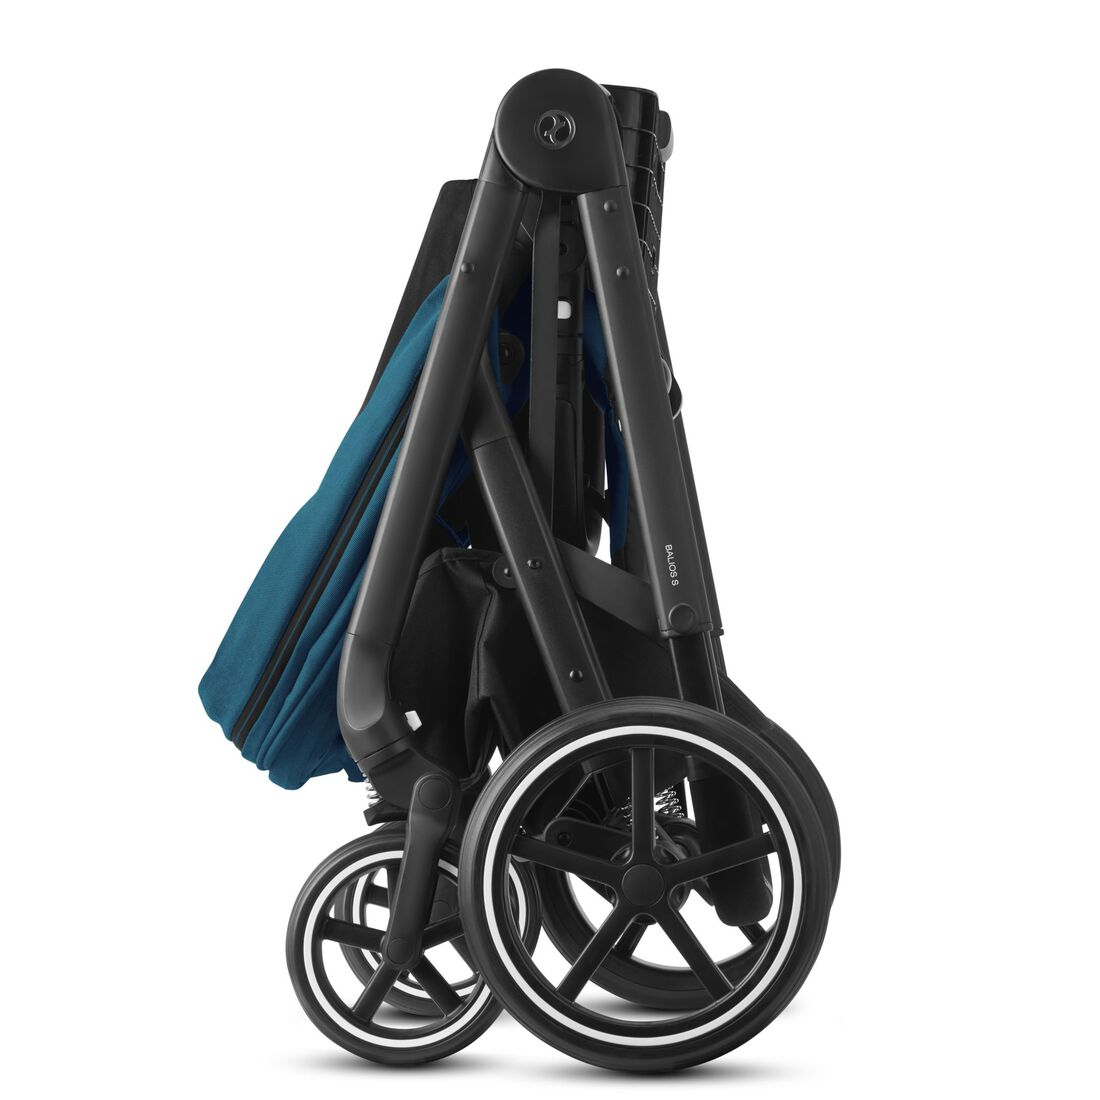 CYBEX Balios S Lux - River Blue (Black Frame) in River Blue (Black Frame) large image number 7